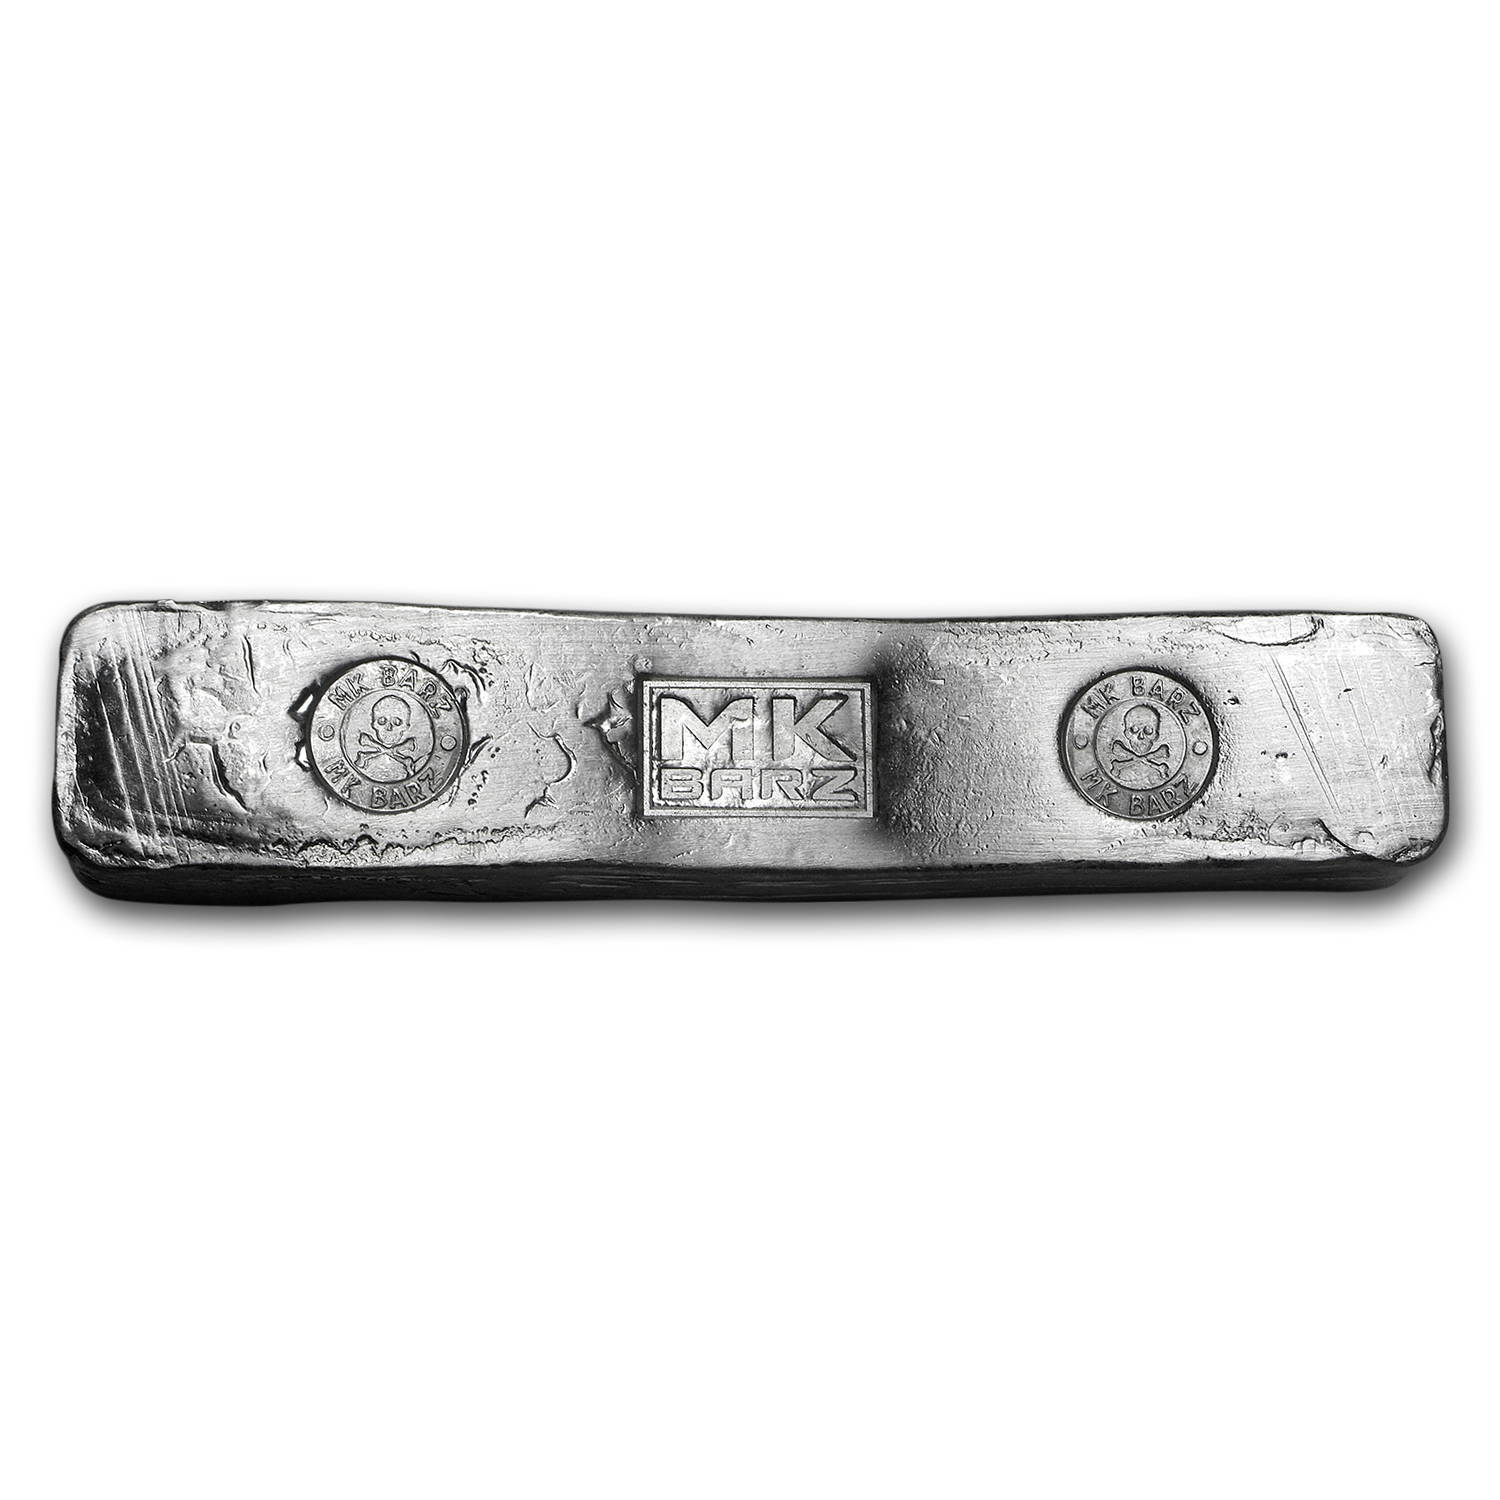 15 oz Silver Bar - MK Barz & Bullion (Skull & Bones, Kit-Kat)